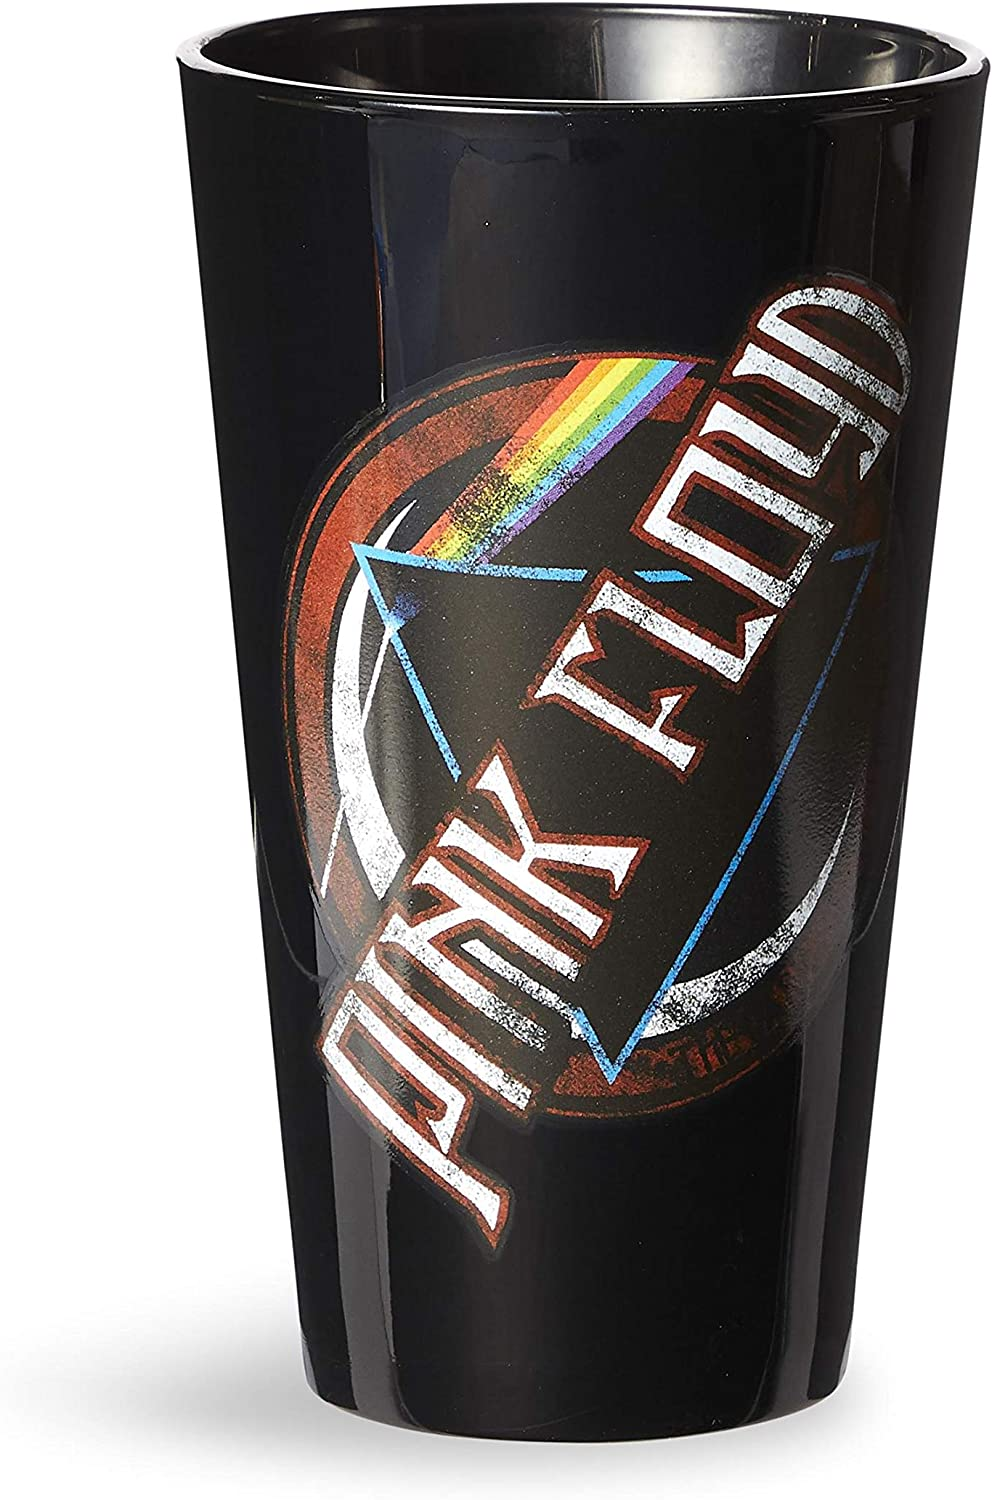 OFFICIAL Pink Floyd 'Dark Side of the Moon' PREMIUM Pint/Beer Glass - Novelty Drinking Glasses Kids/Adults Gifts Toys (16oz)